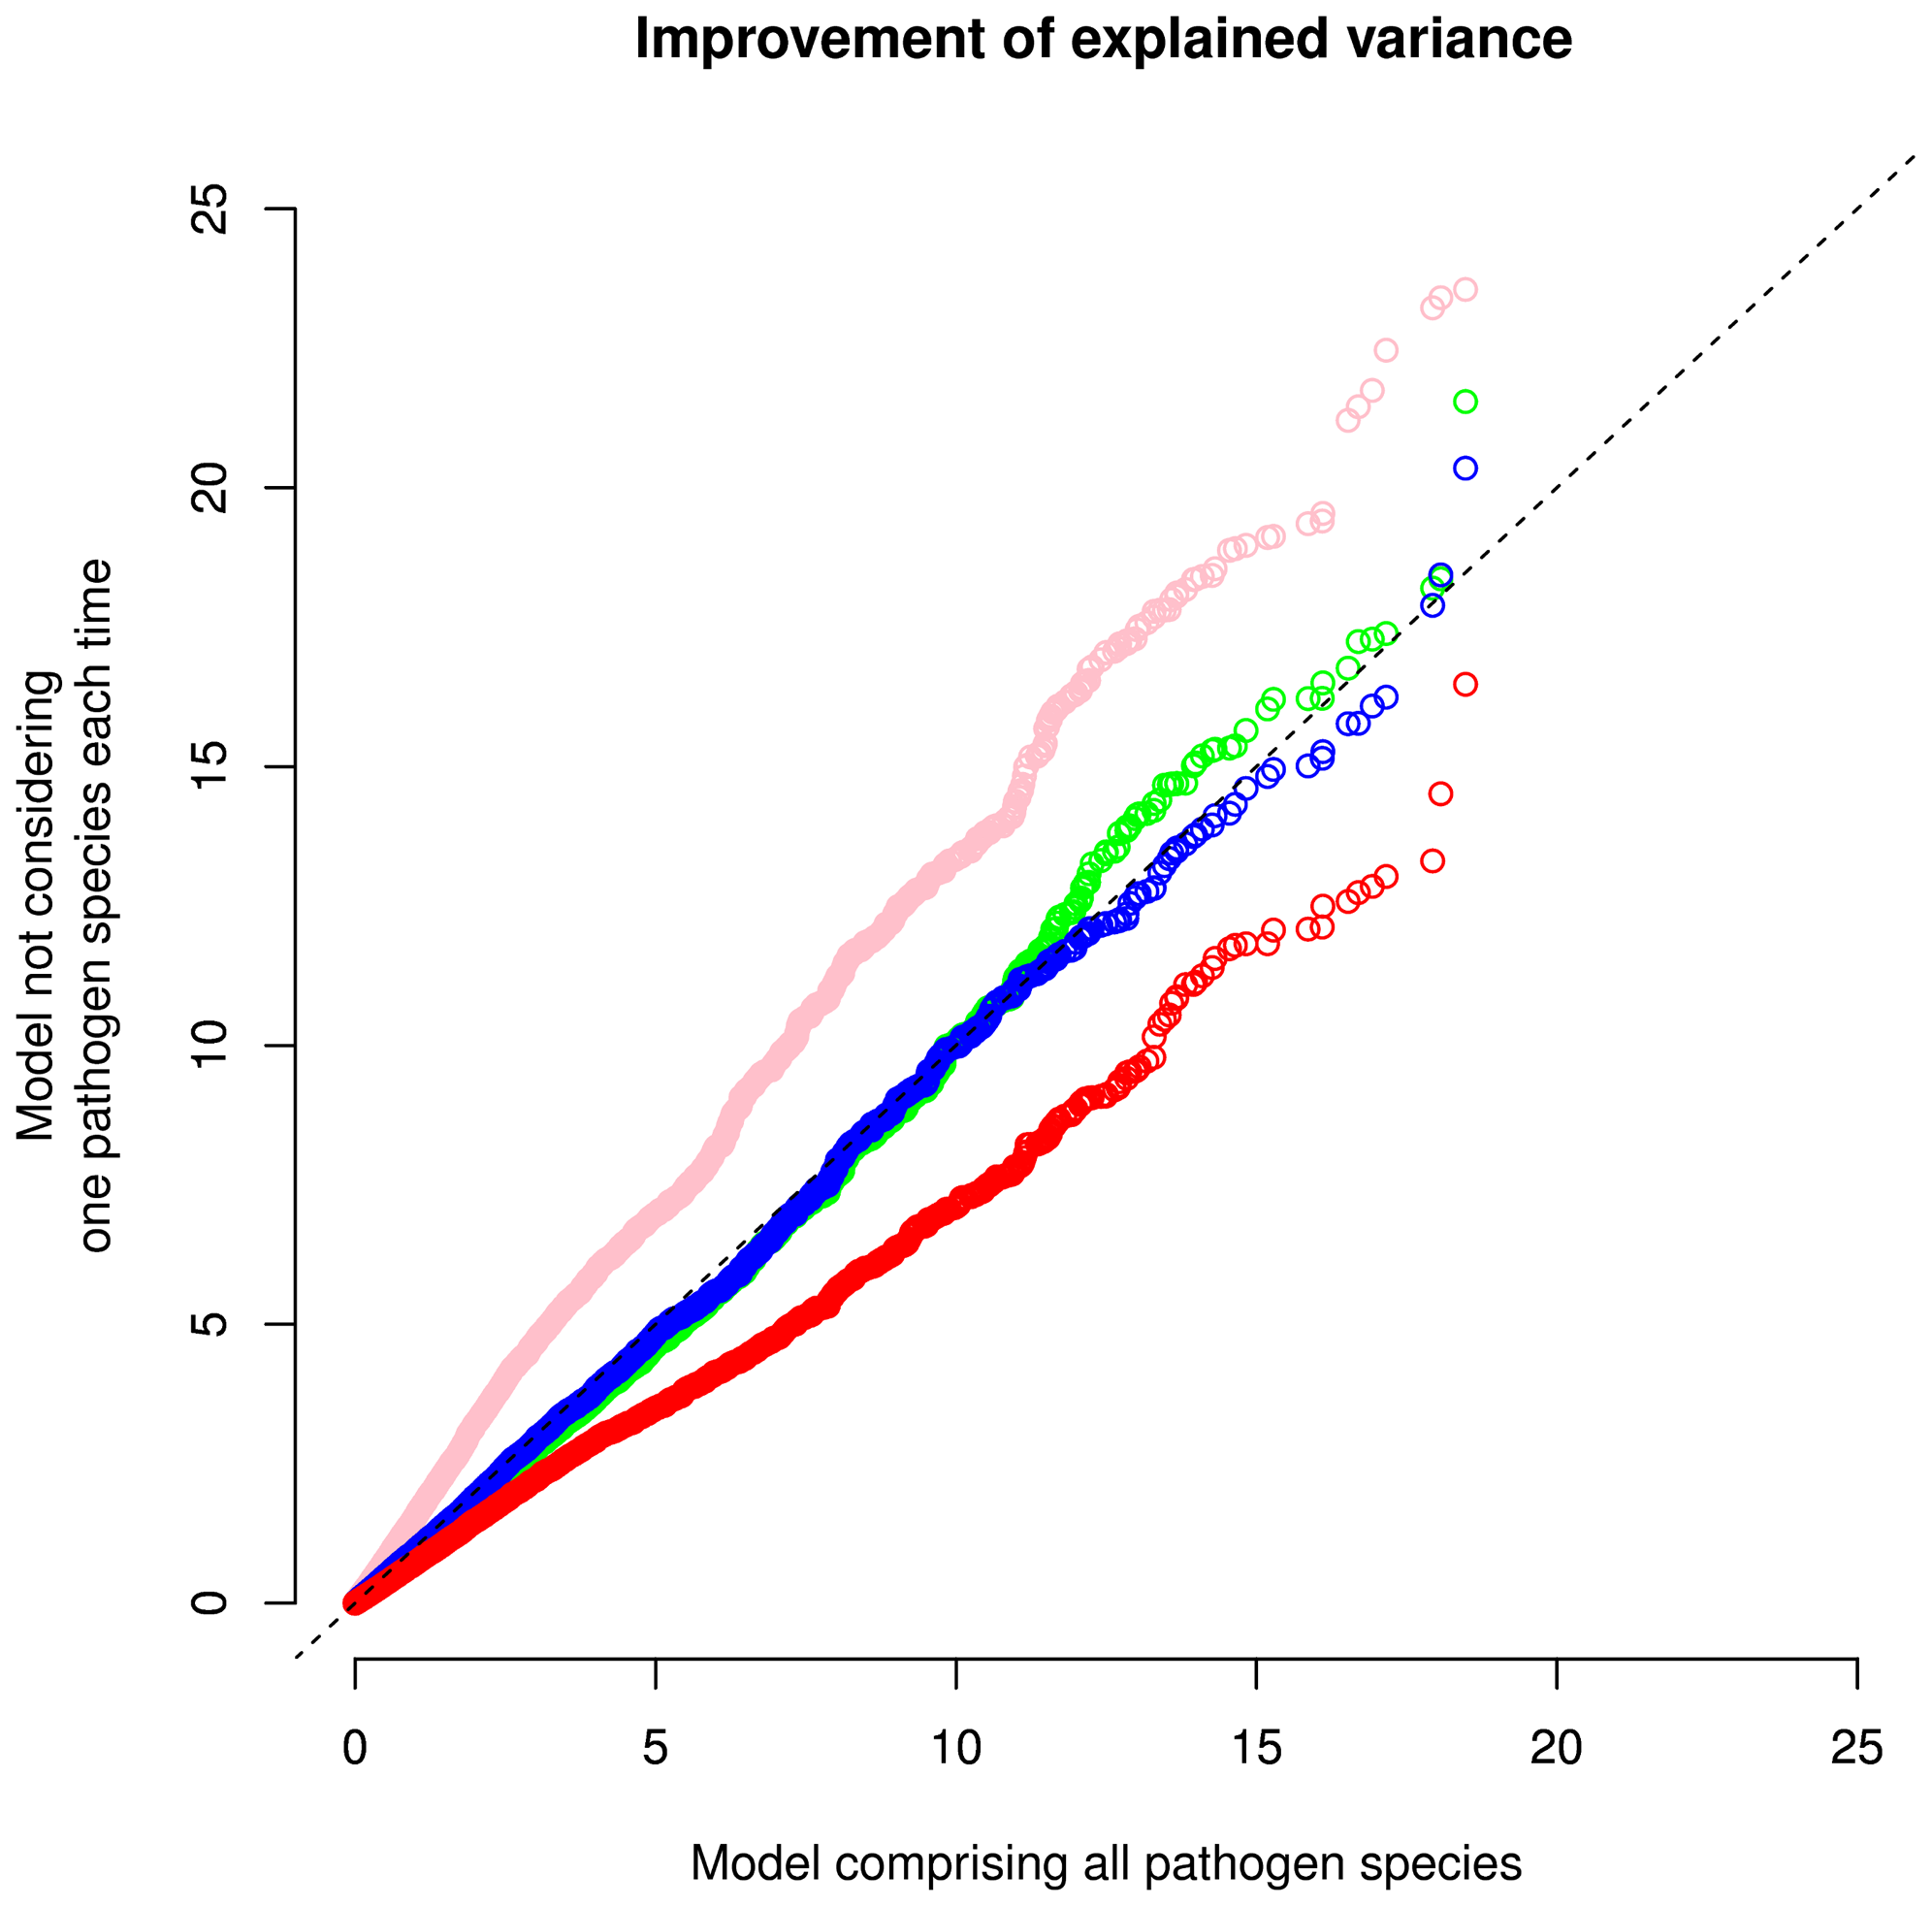 Quantile-quantile (QQ) plot of distribution of improvement of explained variance, <i>I</i>(<i>R</i><sup>2</sup>), computed with a model including all pathogen species and models not including one pathogen group.